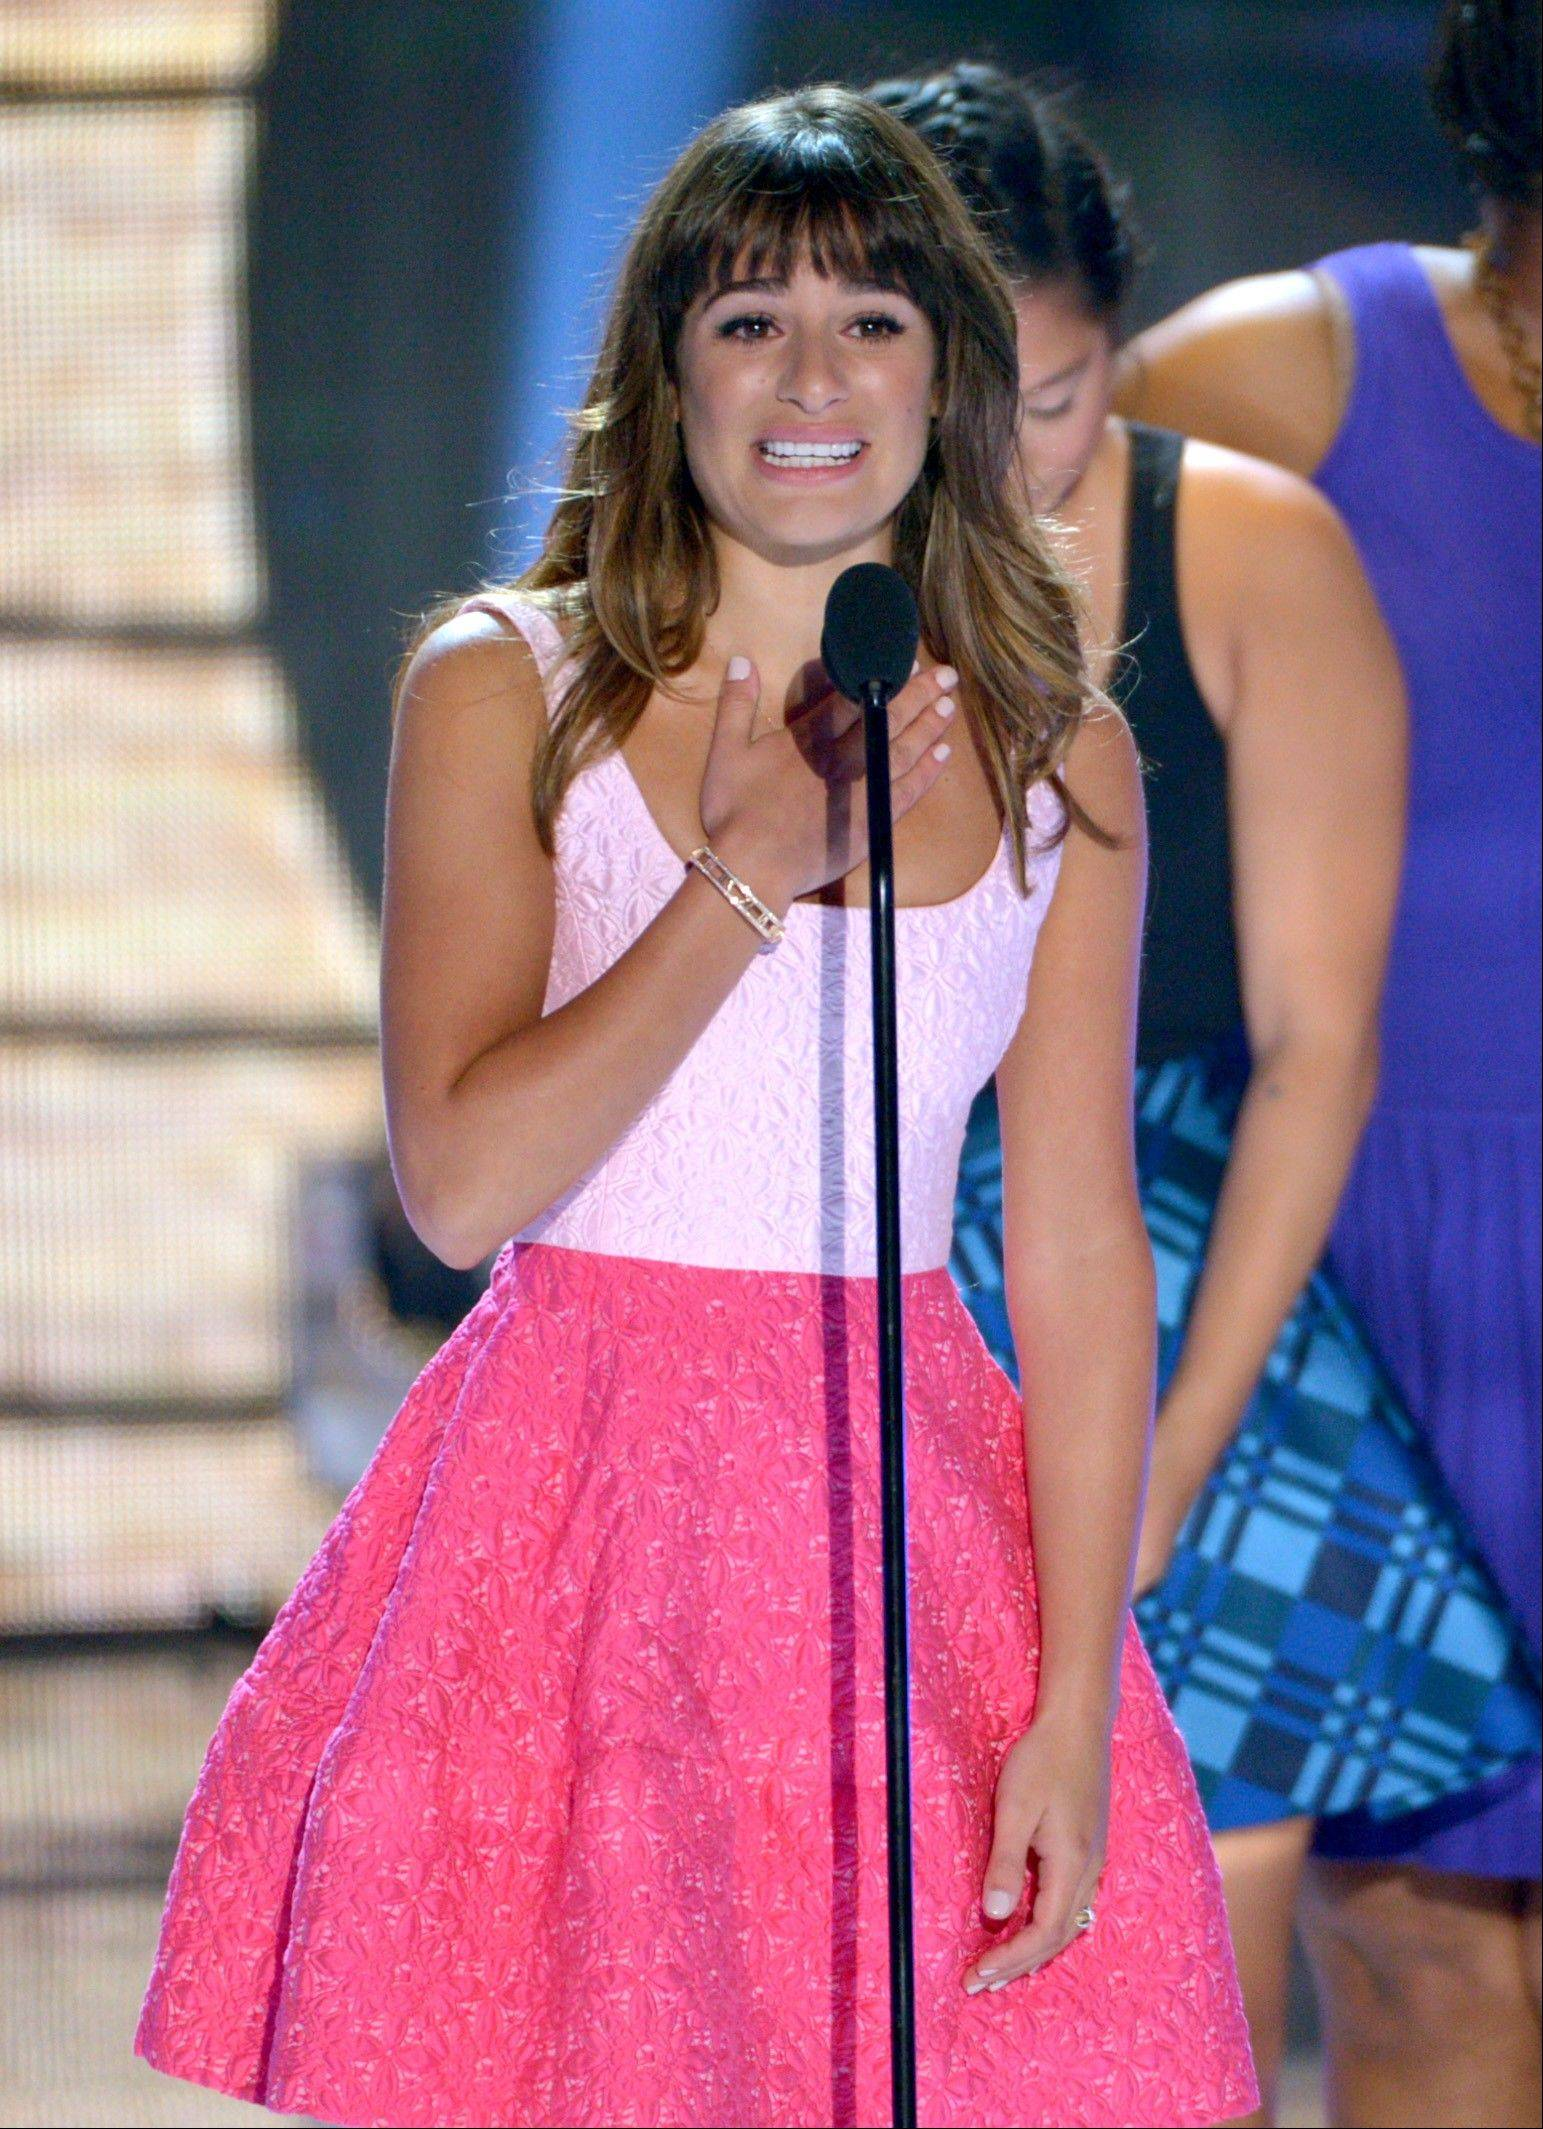 Actress Lea Michele speaks on stage at the Teen Choice Awards at the Gibson Amphitheater on Sunday in Los Angeles. Michele dedicated her award to her late boyfriend and co-star Cory Monteith.